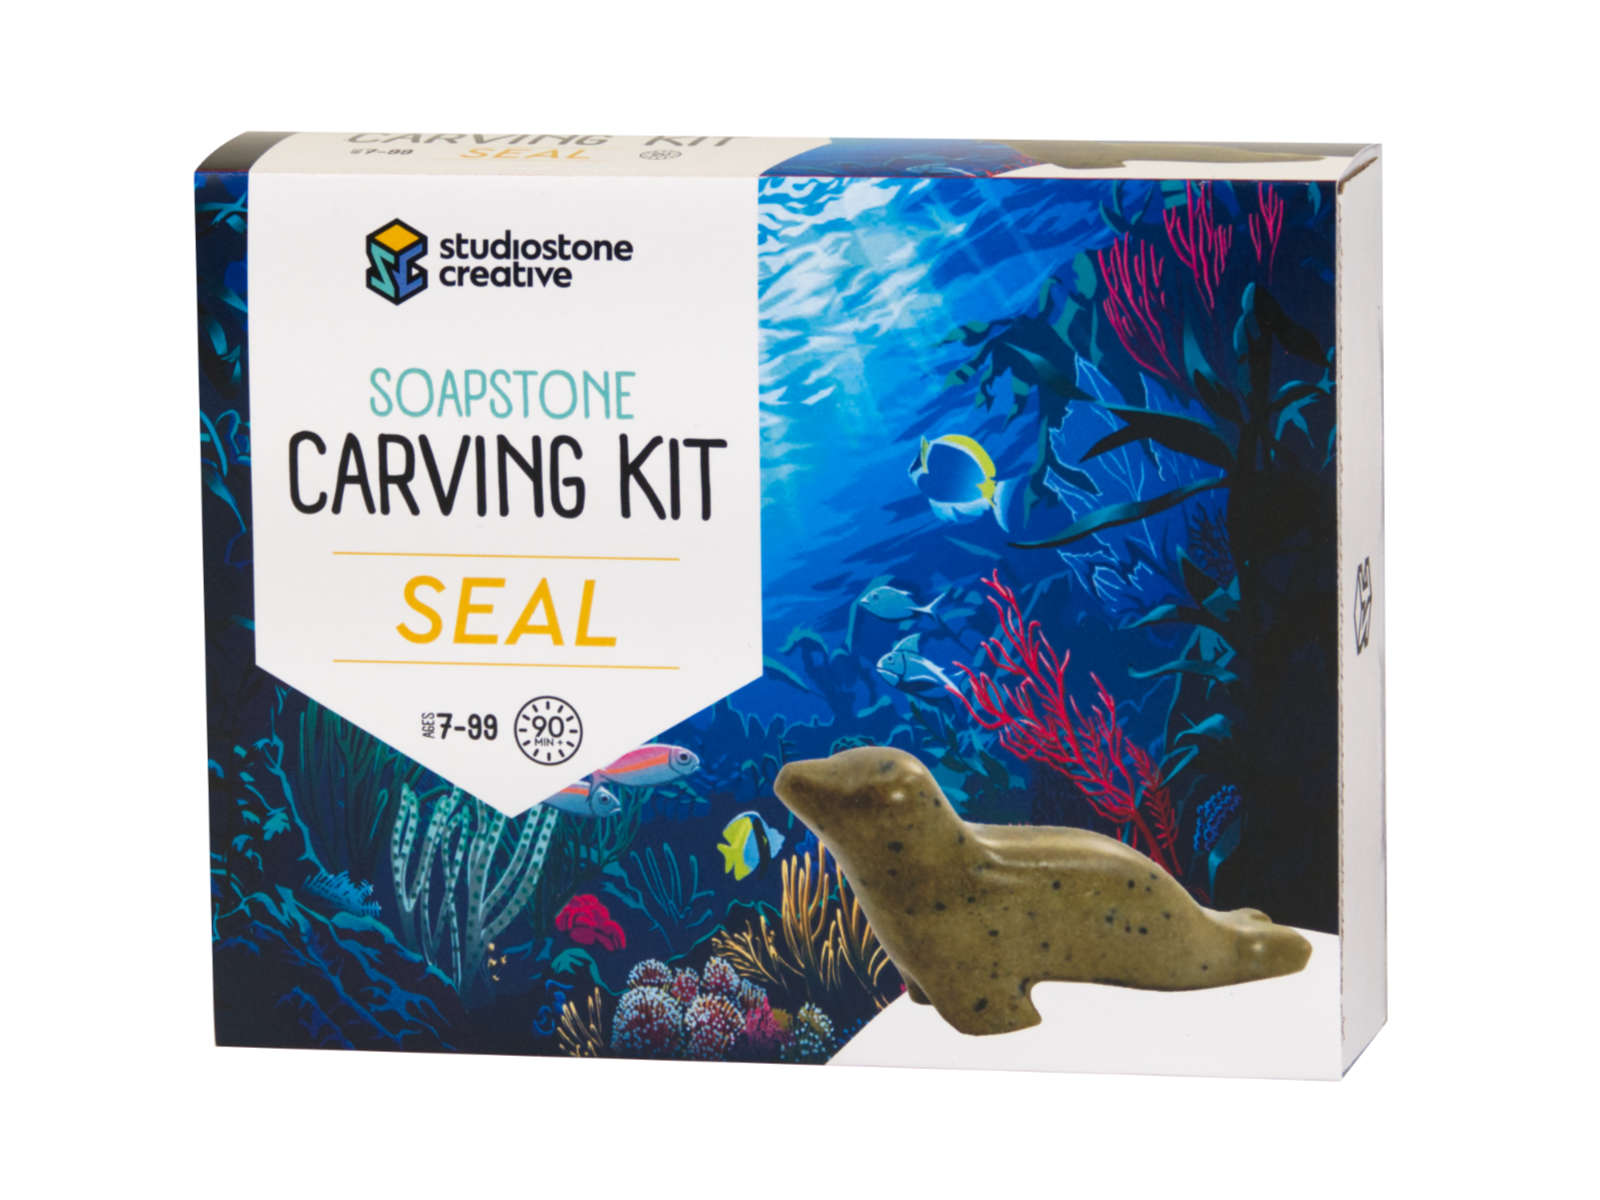 Seal soapstone carving kit box